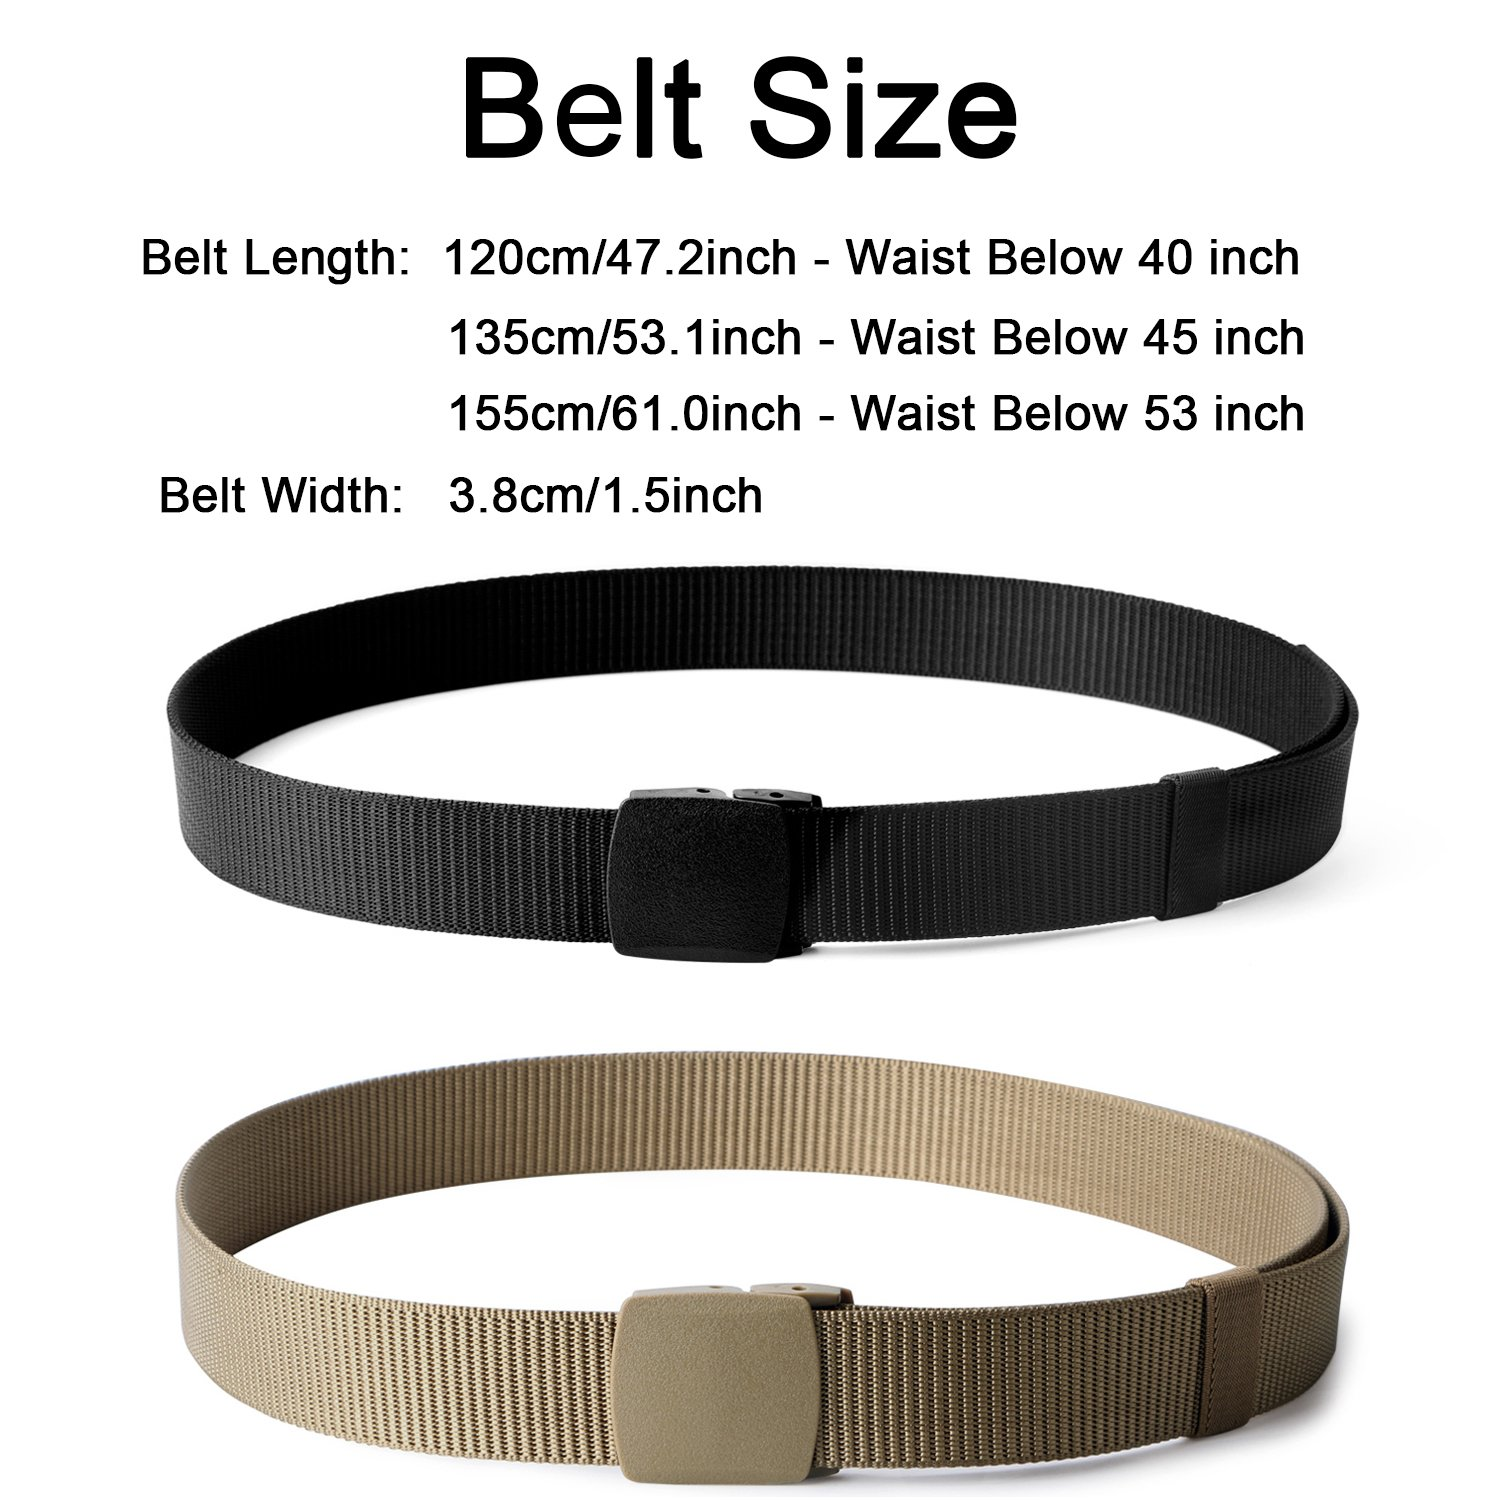 Nylon Military Tactical Belt 2 Pack Webbing Canvas Outdoor Web Belt With Plastic Buckle by JASGOOD (Image #6)